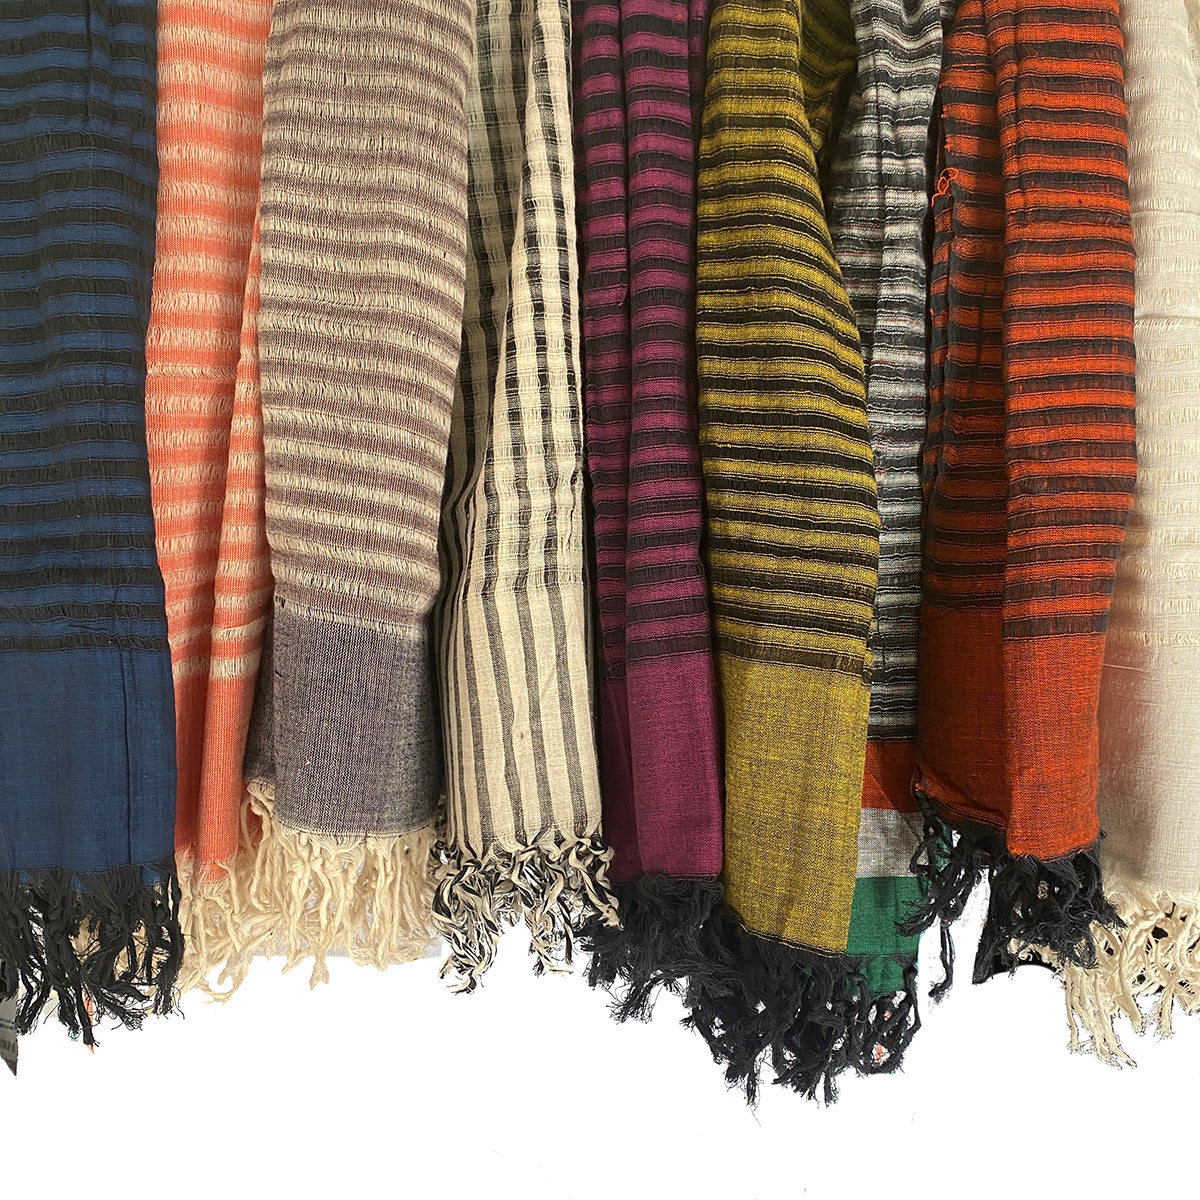 Handwoven Striped Cotton Scarves - Vintage India NYC